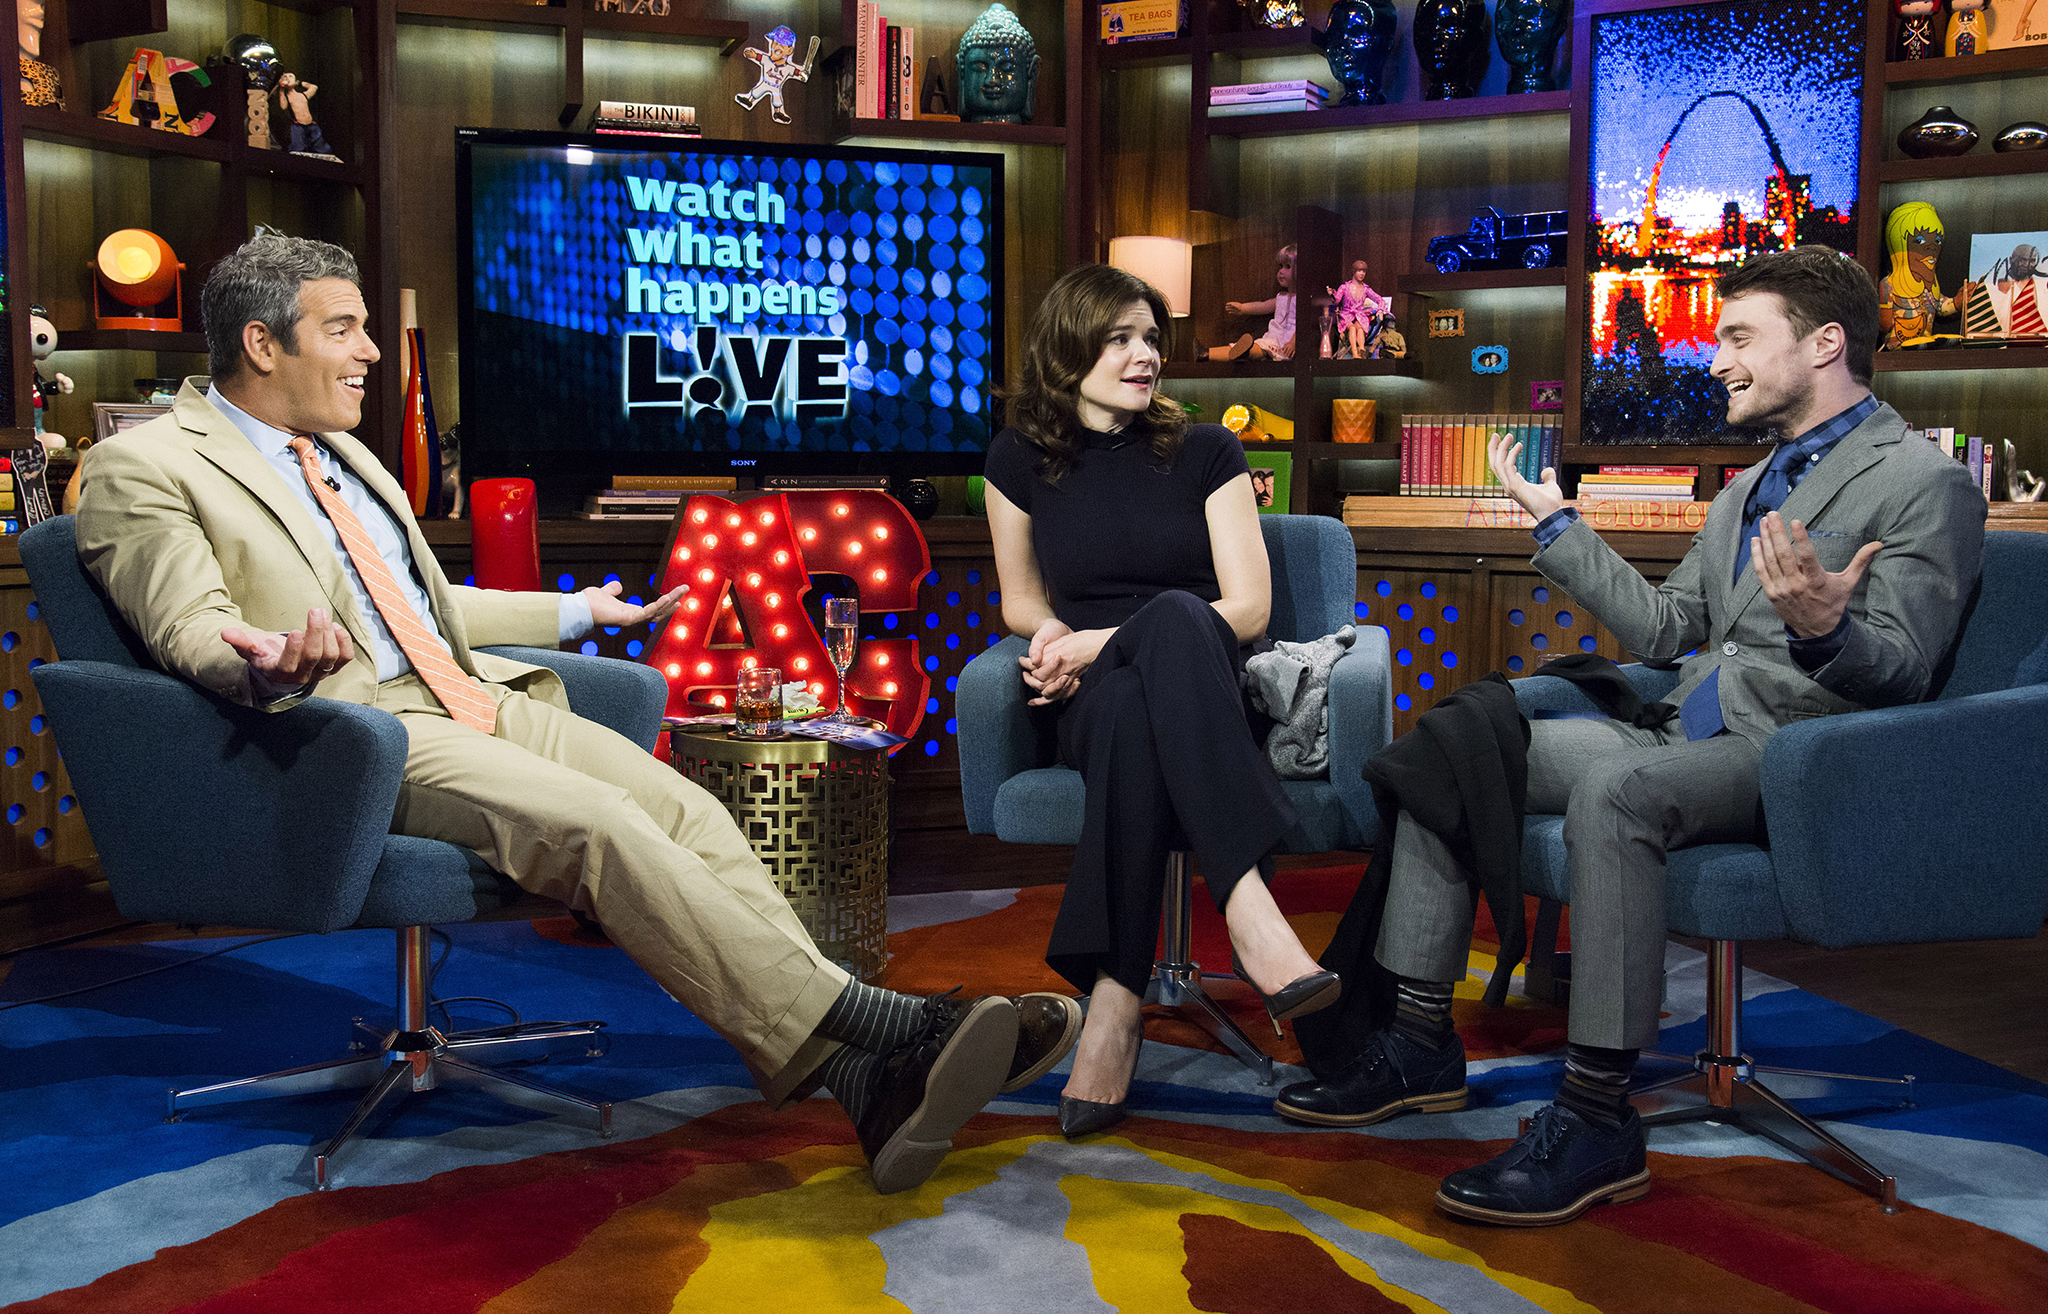 Daniel Radcliffe and Betsy Brandt join Andy Cohen on set (Charles Sykes/Bravo)